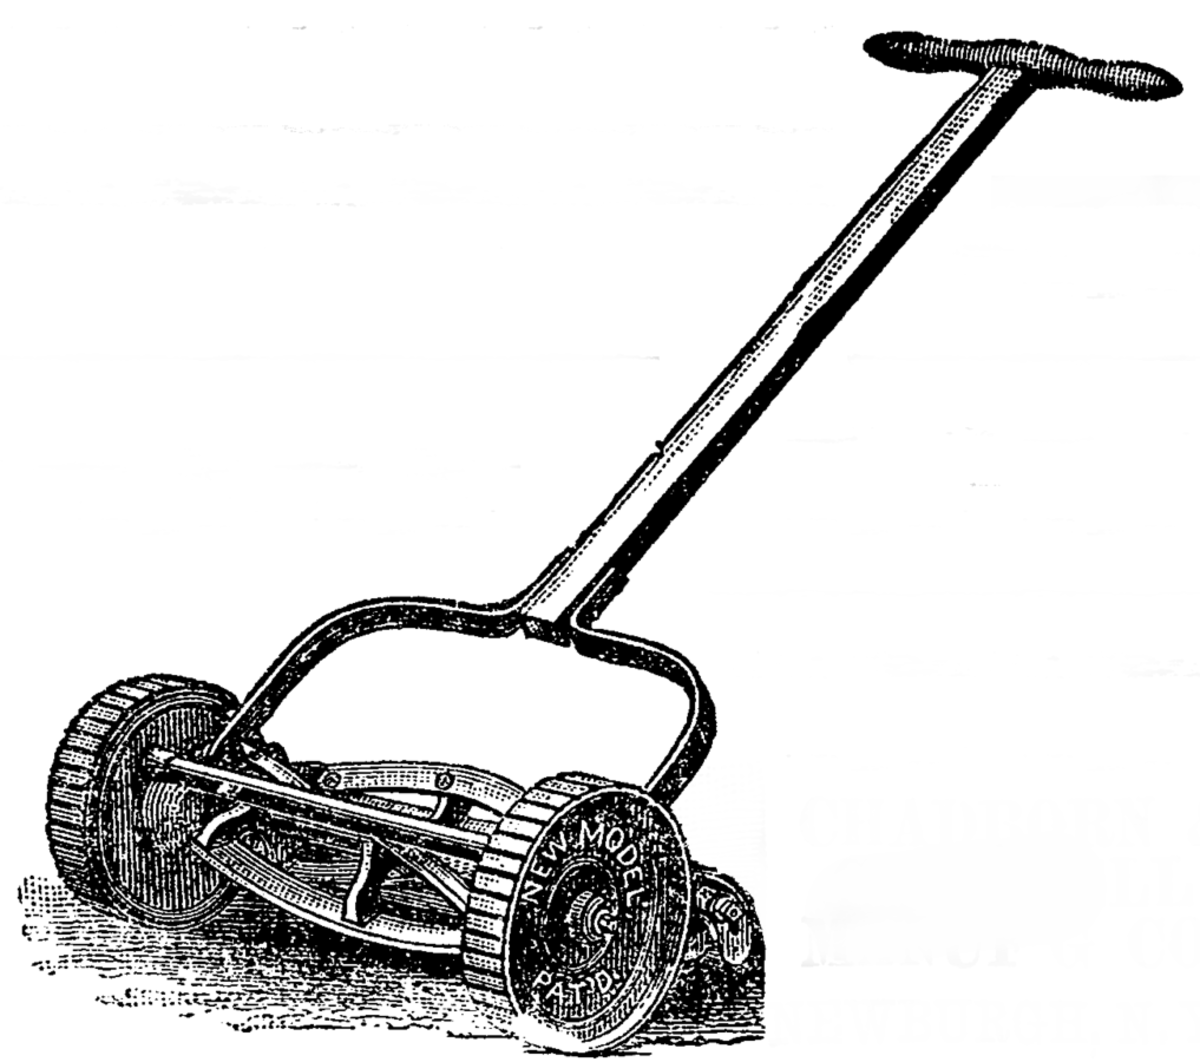 The reel mower has changed little since its invention.